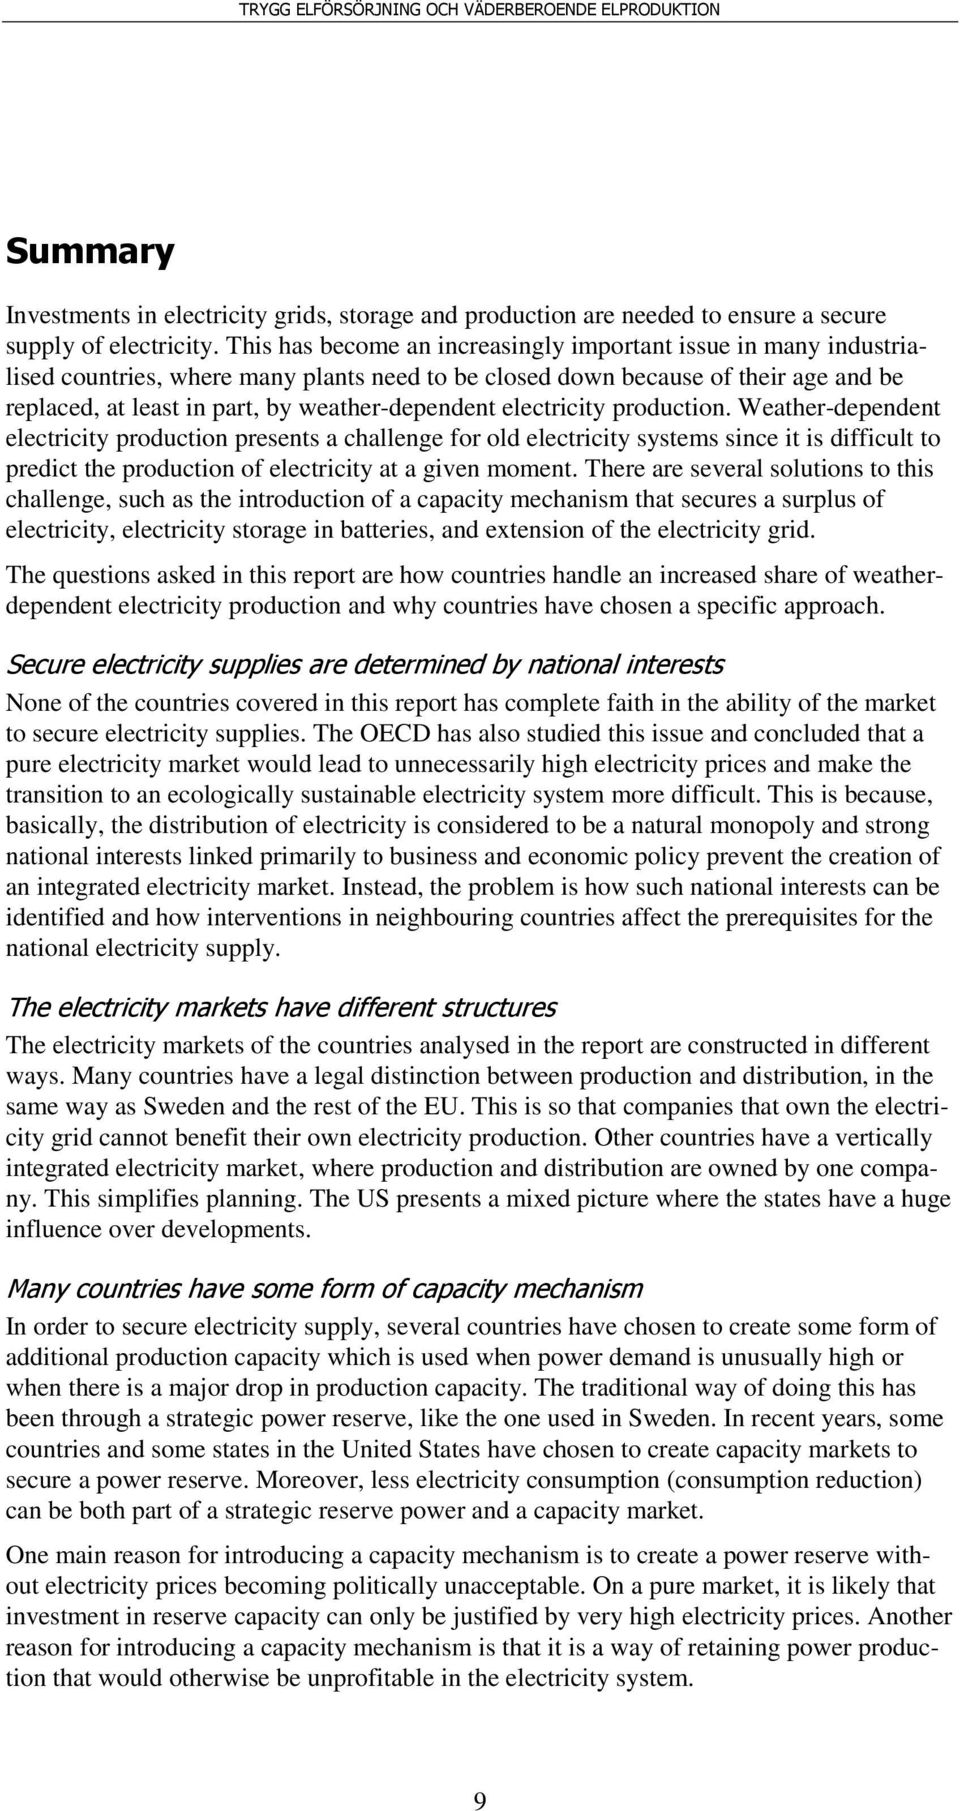 electricity production. Weather-dependent electricity production presents a challenge for old electricity systems since it is difficult to predict the production of electricity at a given moment.